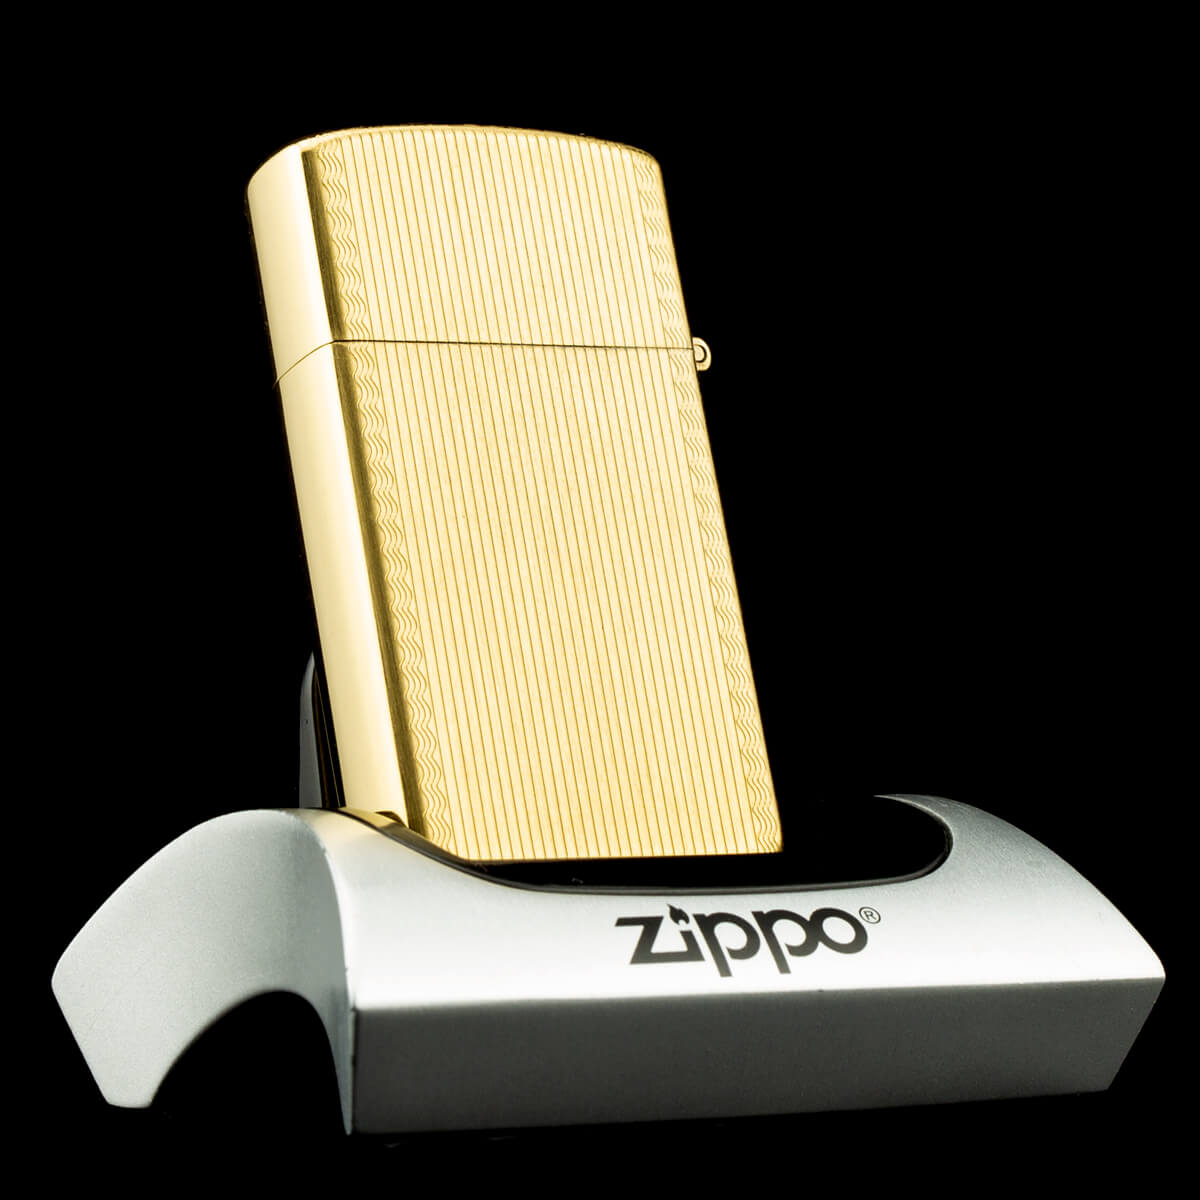 bat-lua-zippo-slim-gold-filled-10k-striped-1970s-phu-vang-hiem-ma-vang